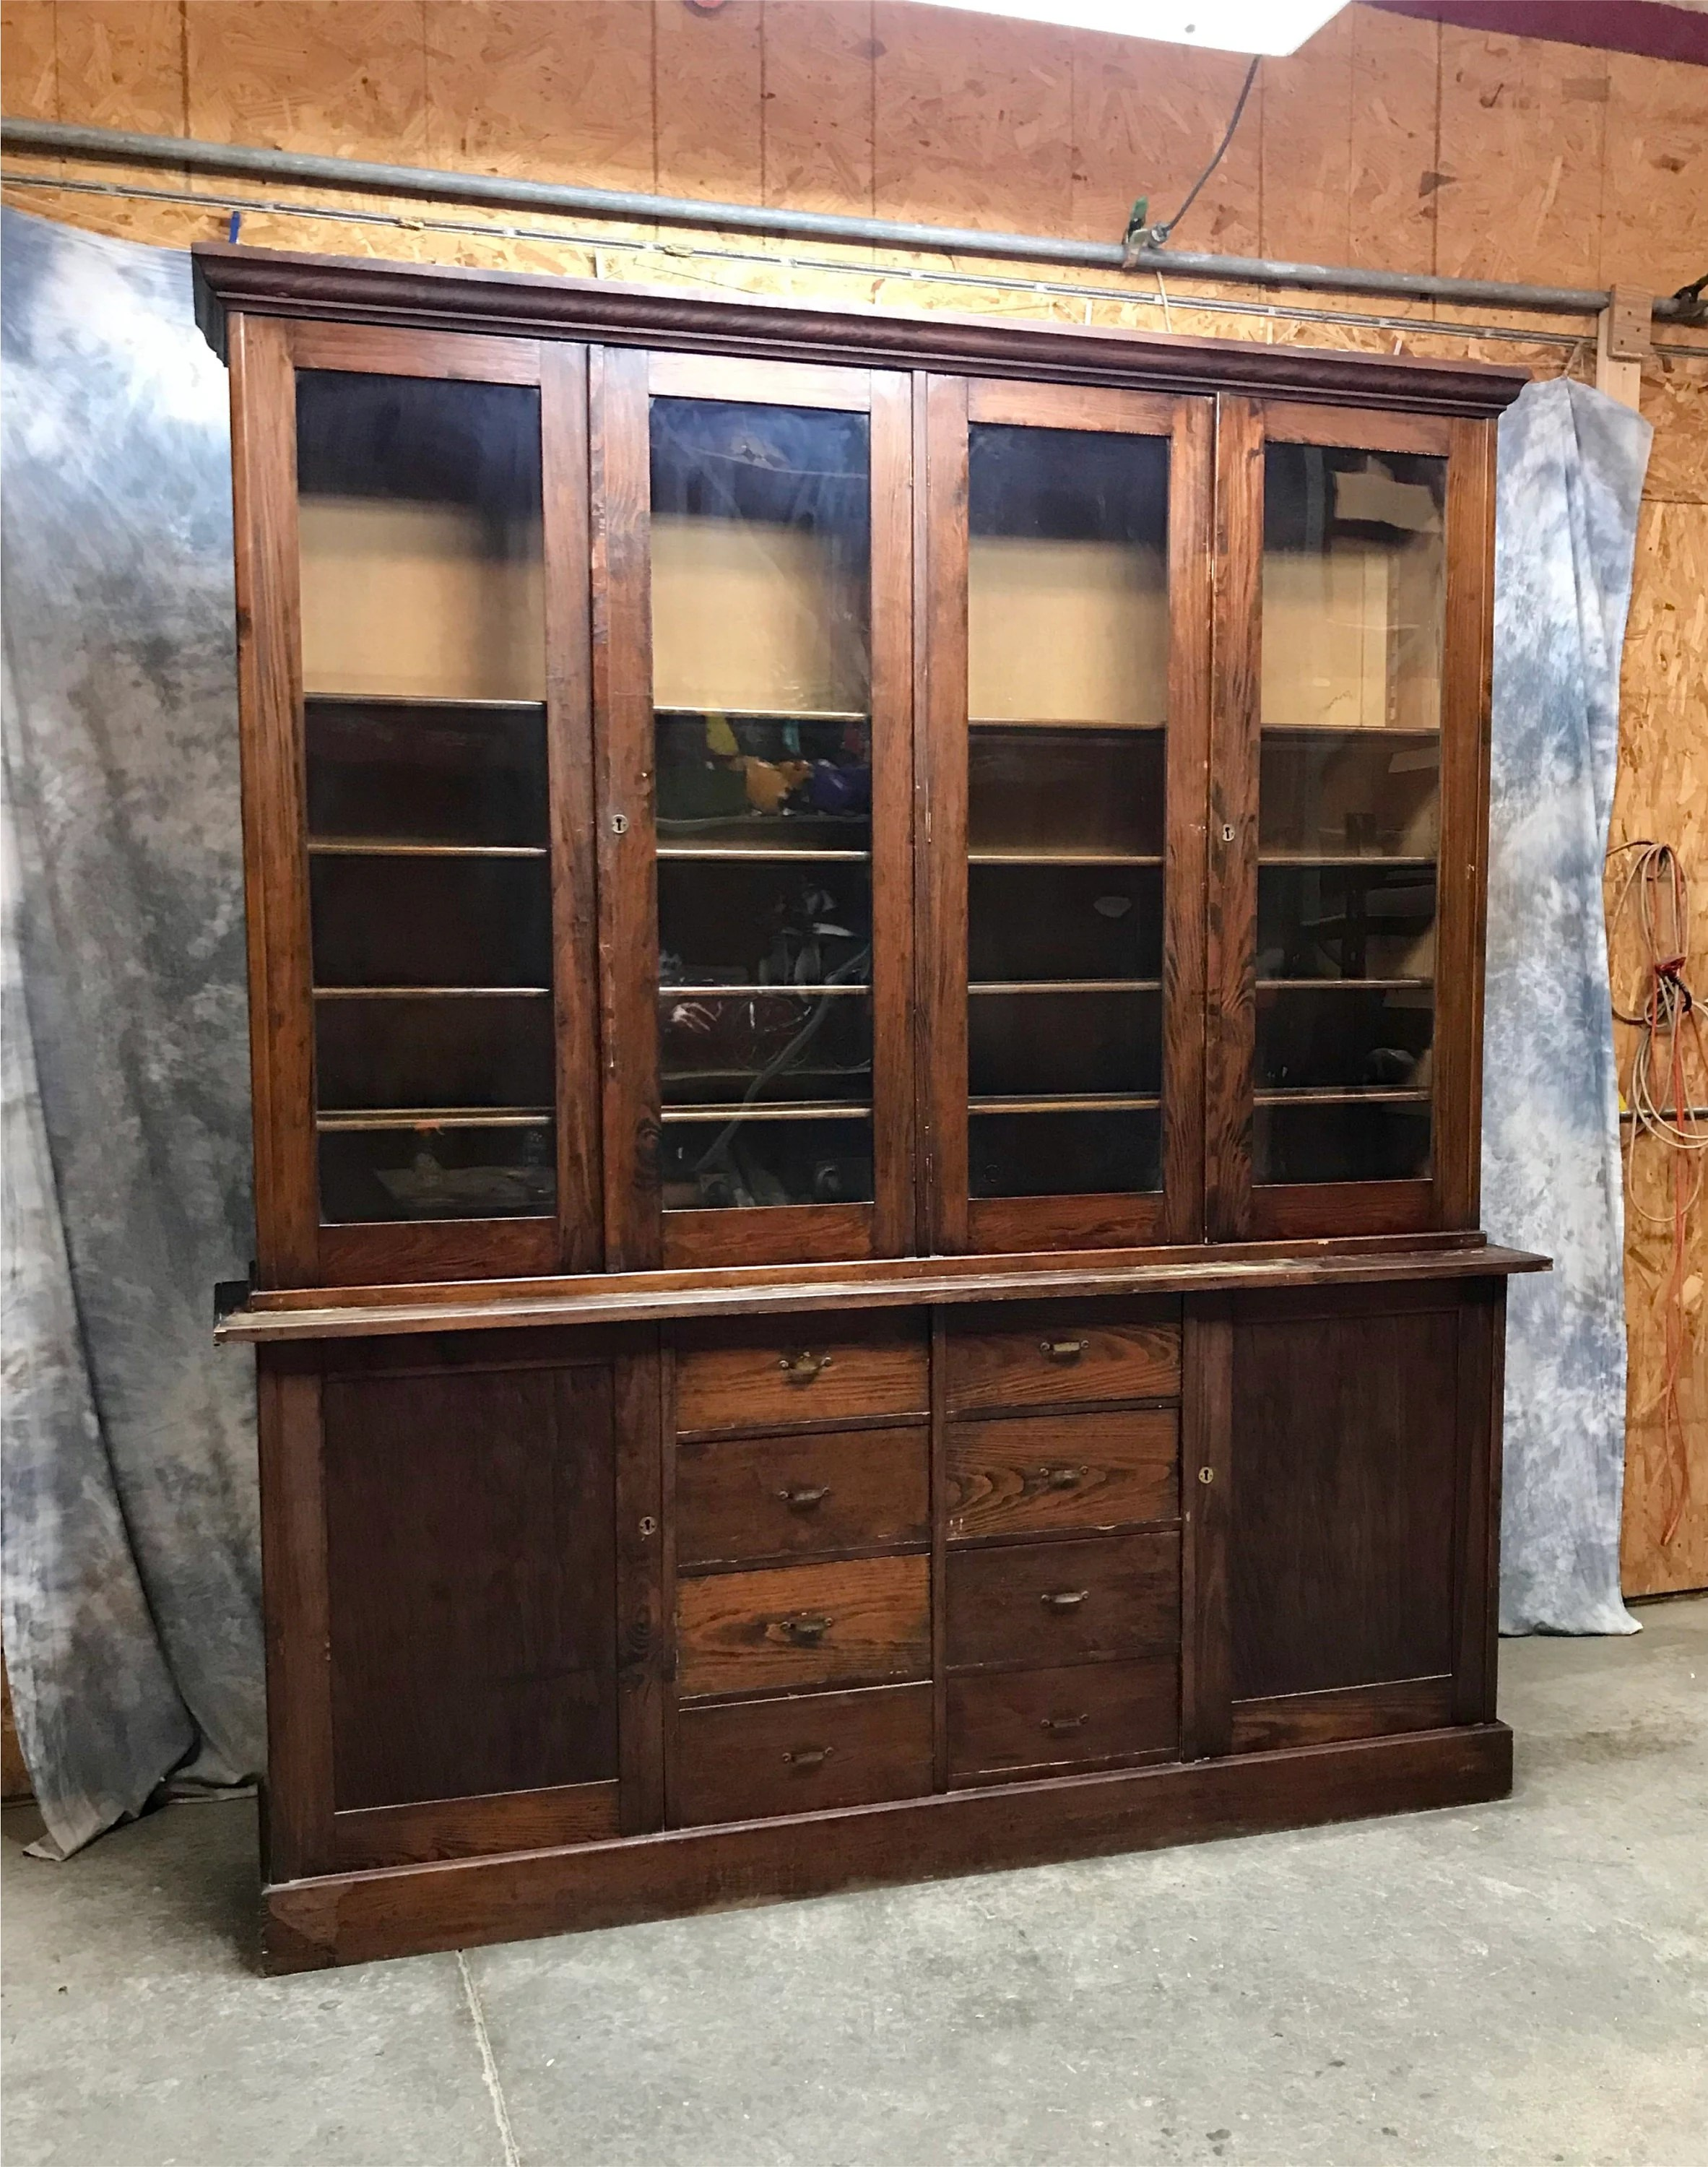 Bookcase Cabinet 8 Antique Display Cabinet Glass Doors Bookcase China Cabinet Curio Cabinet Glass Bookcase Kitchen Cabinet Apothecary Cabinet Pharmacy